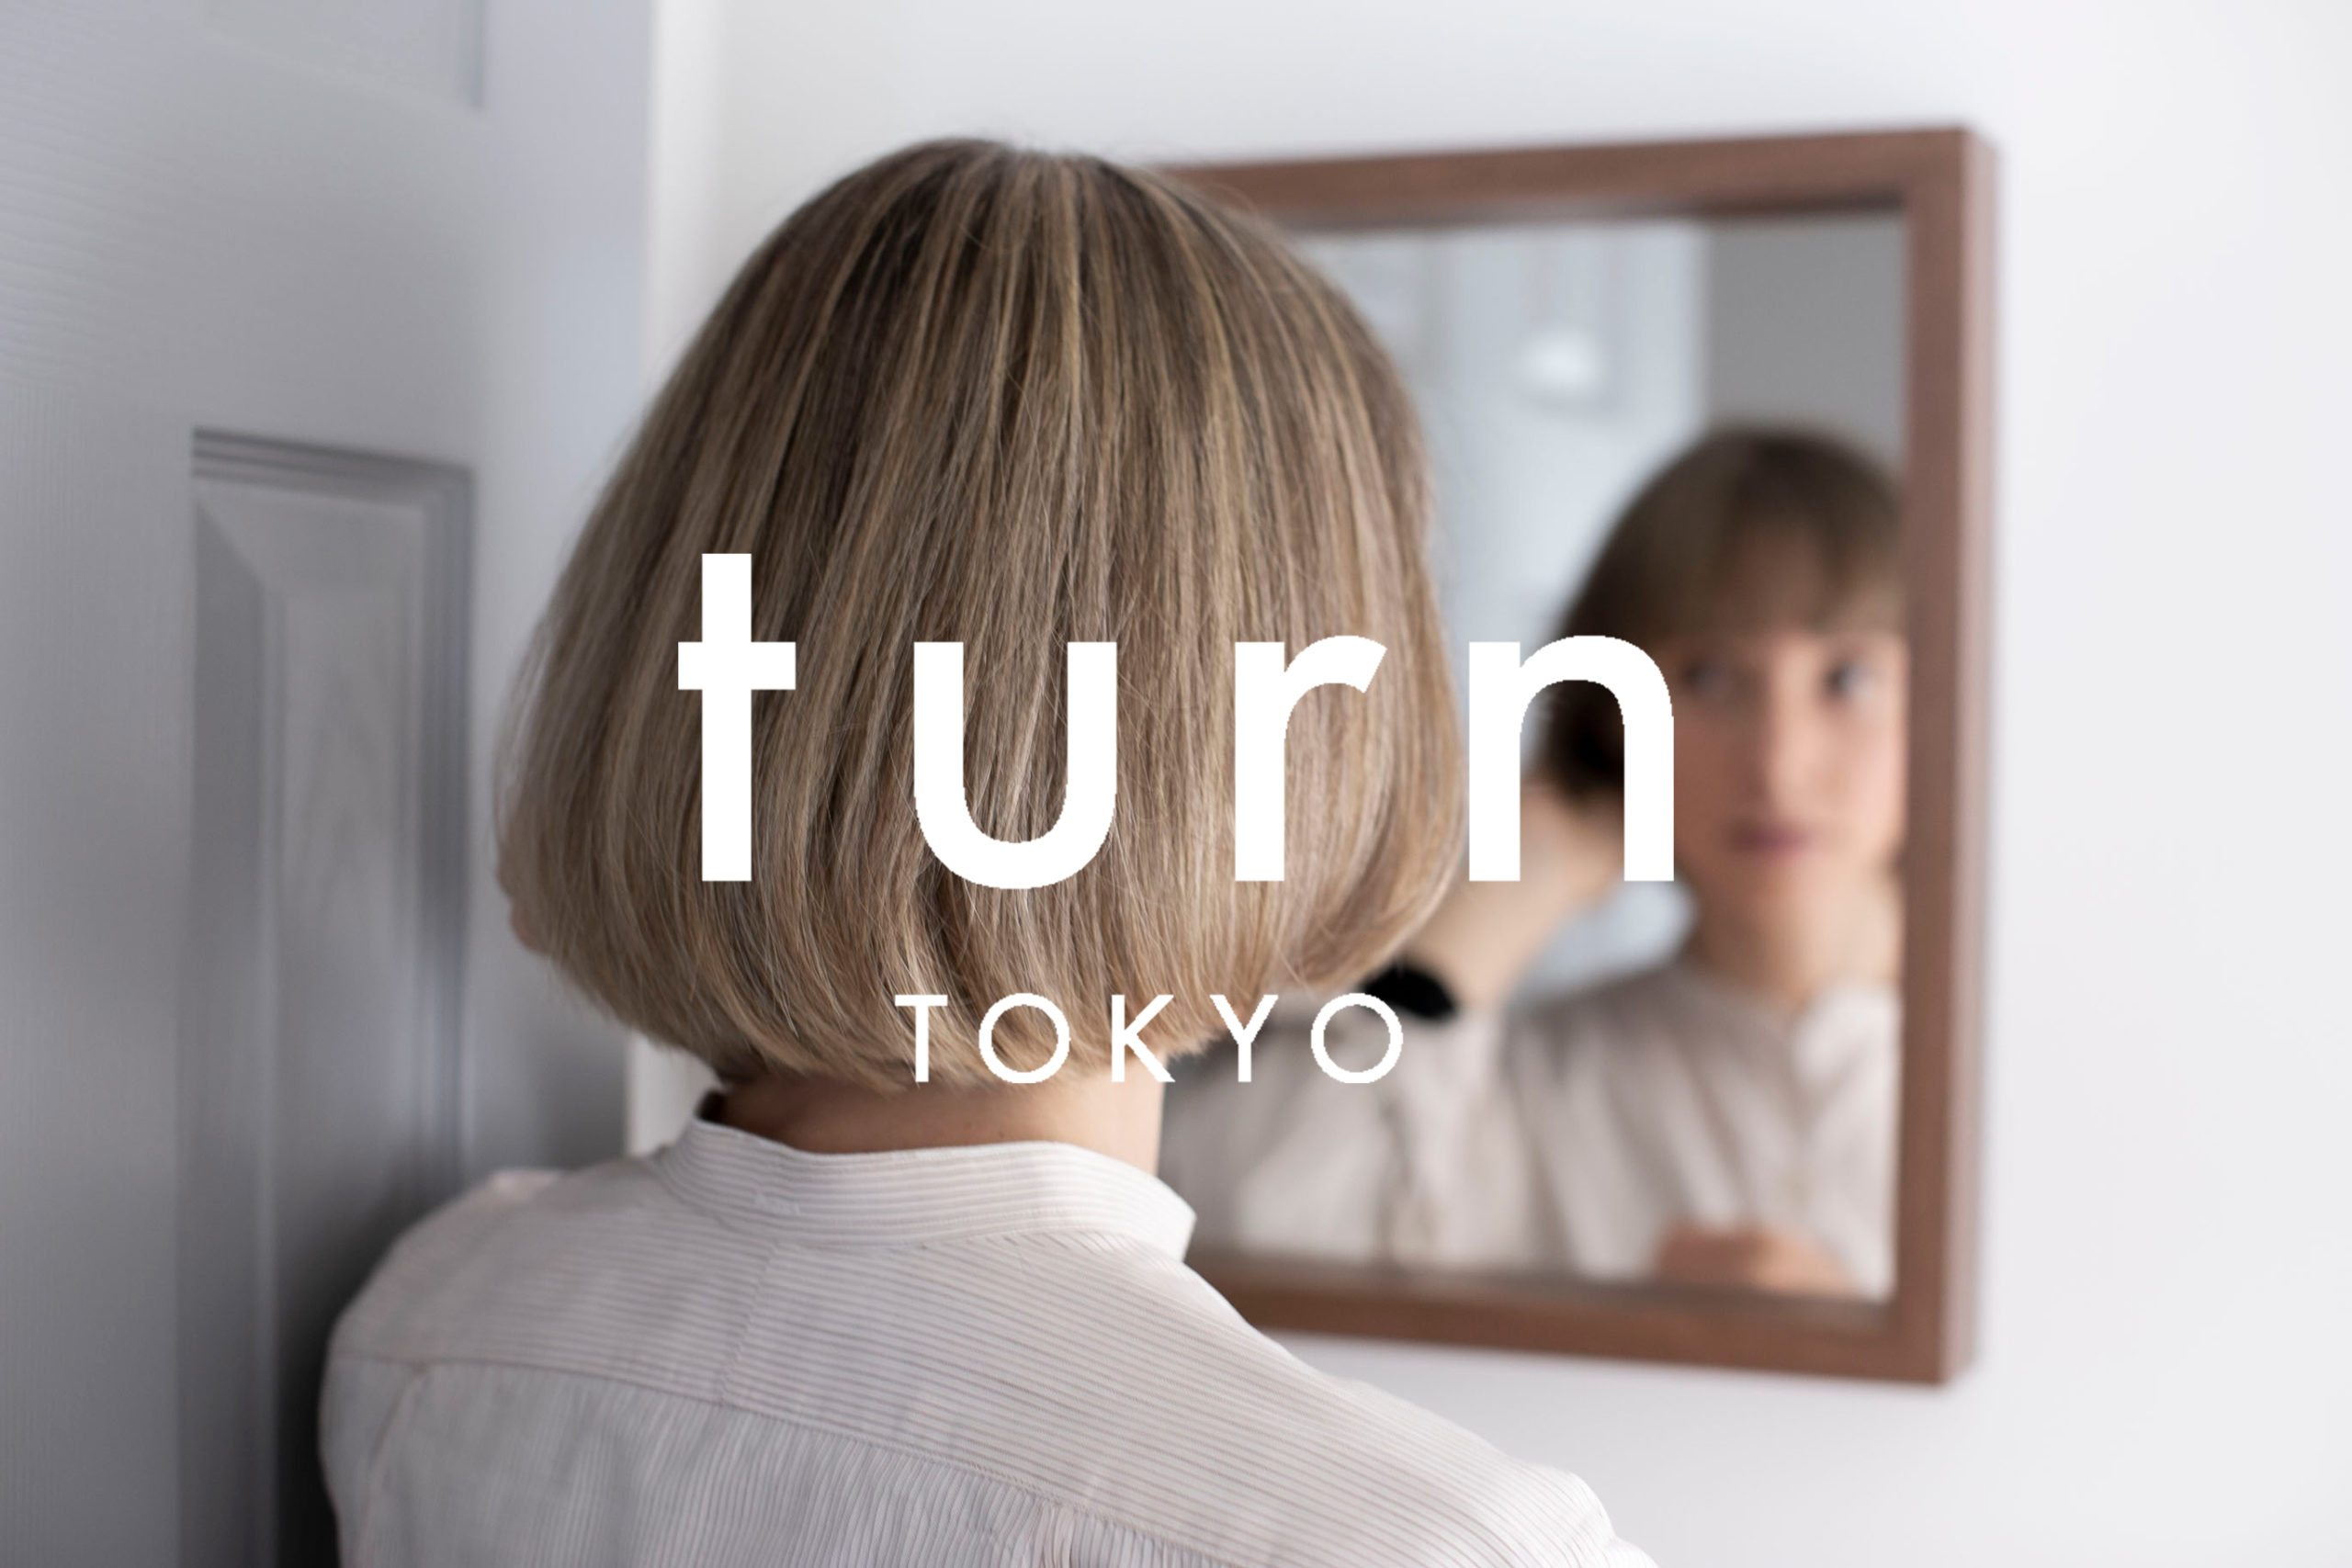 turn TOKYOは英語対応美容室です【English speaking hair salon in Tokyo】